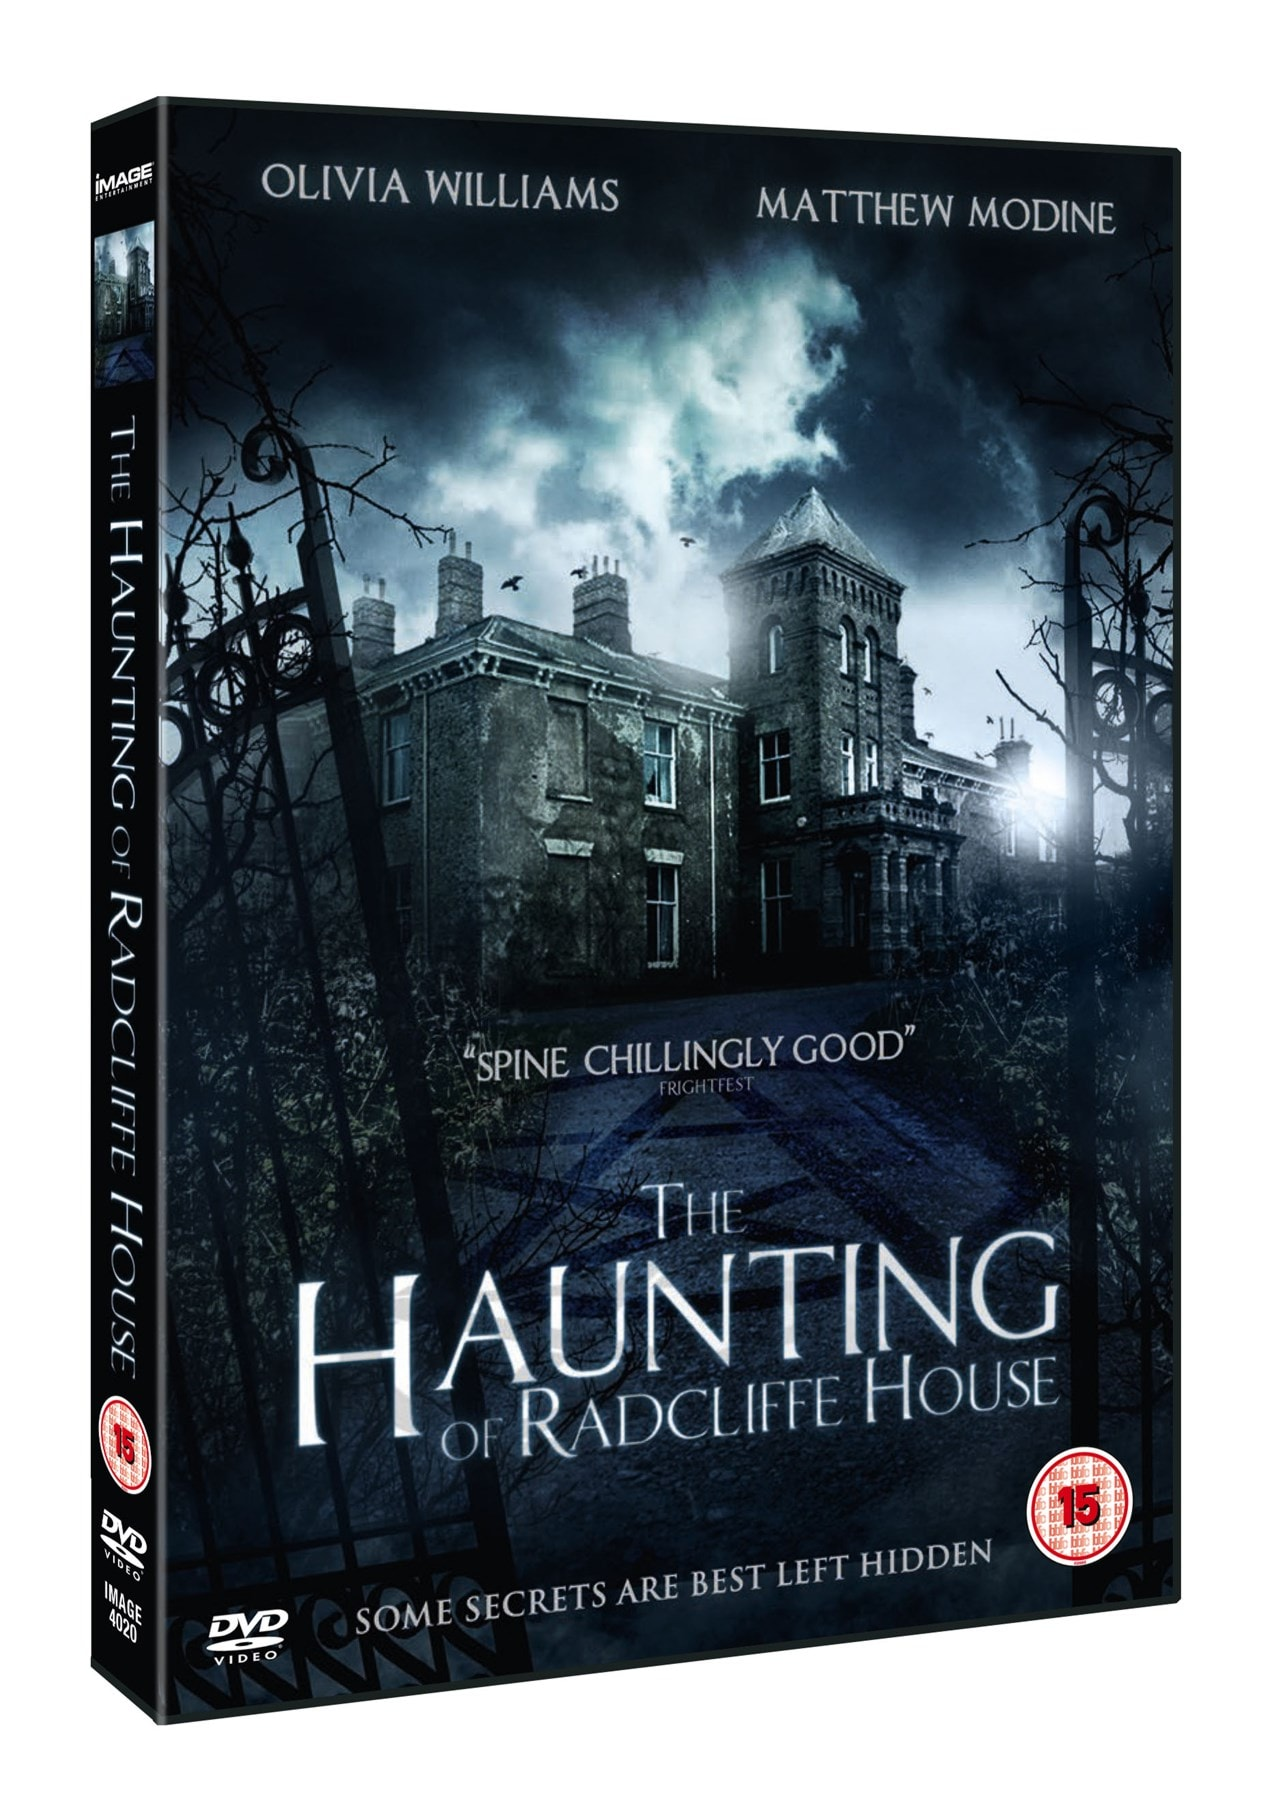 The Haunting of Radcliffe House - 2